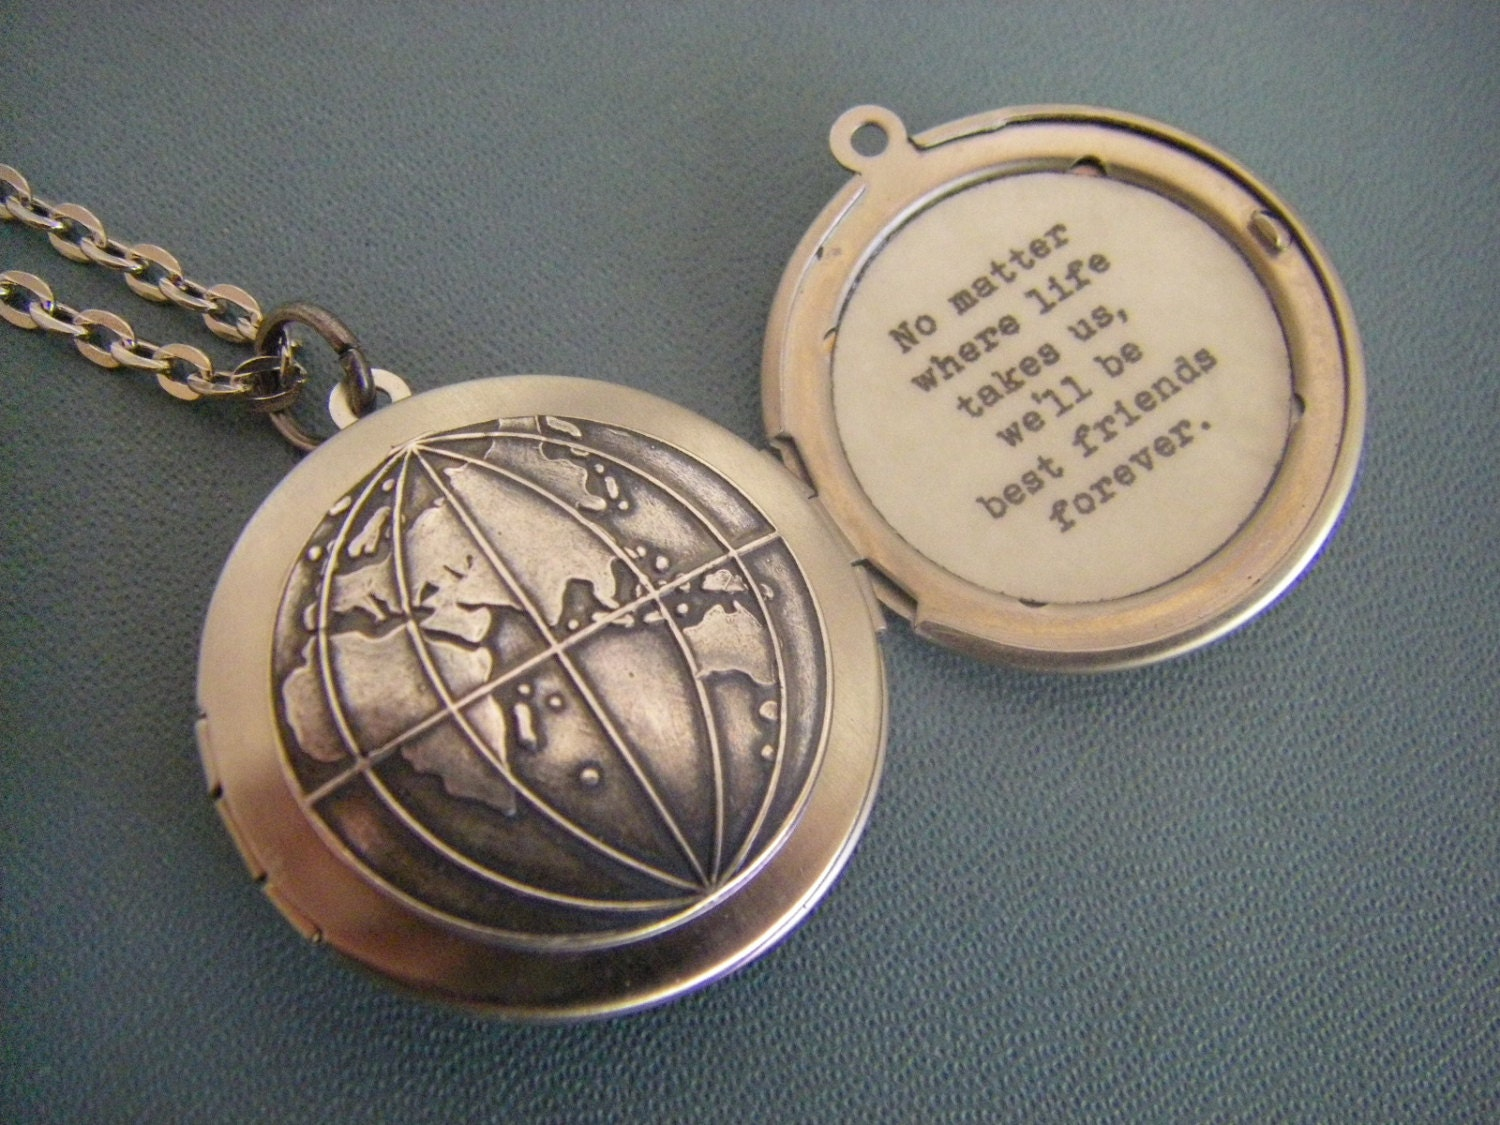 best hnya il locket listing lockets in half crime silver heart fullxfull zoom friend partners